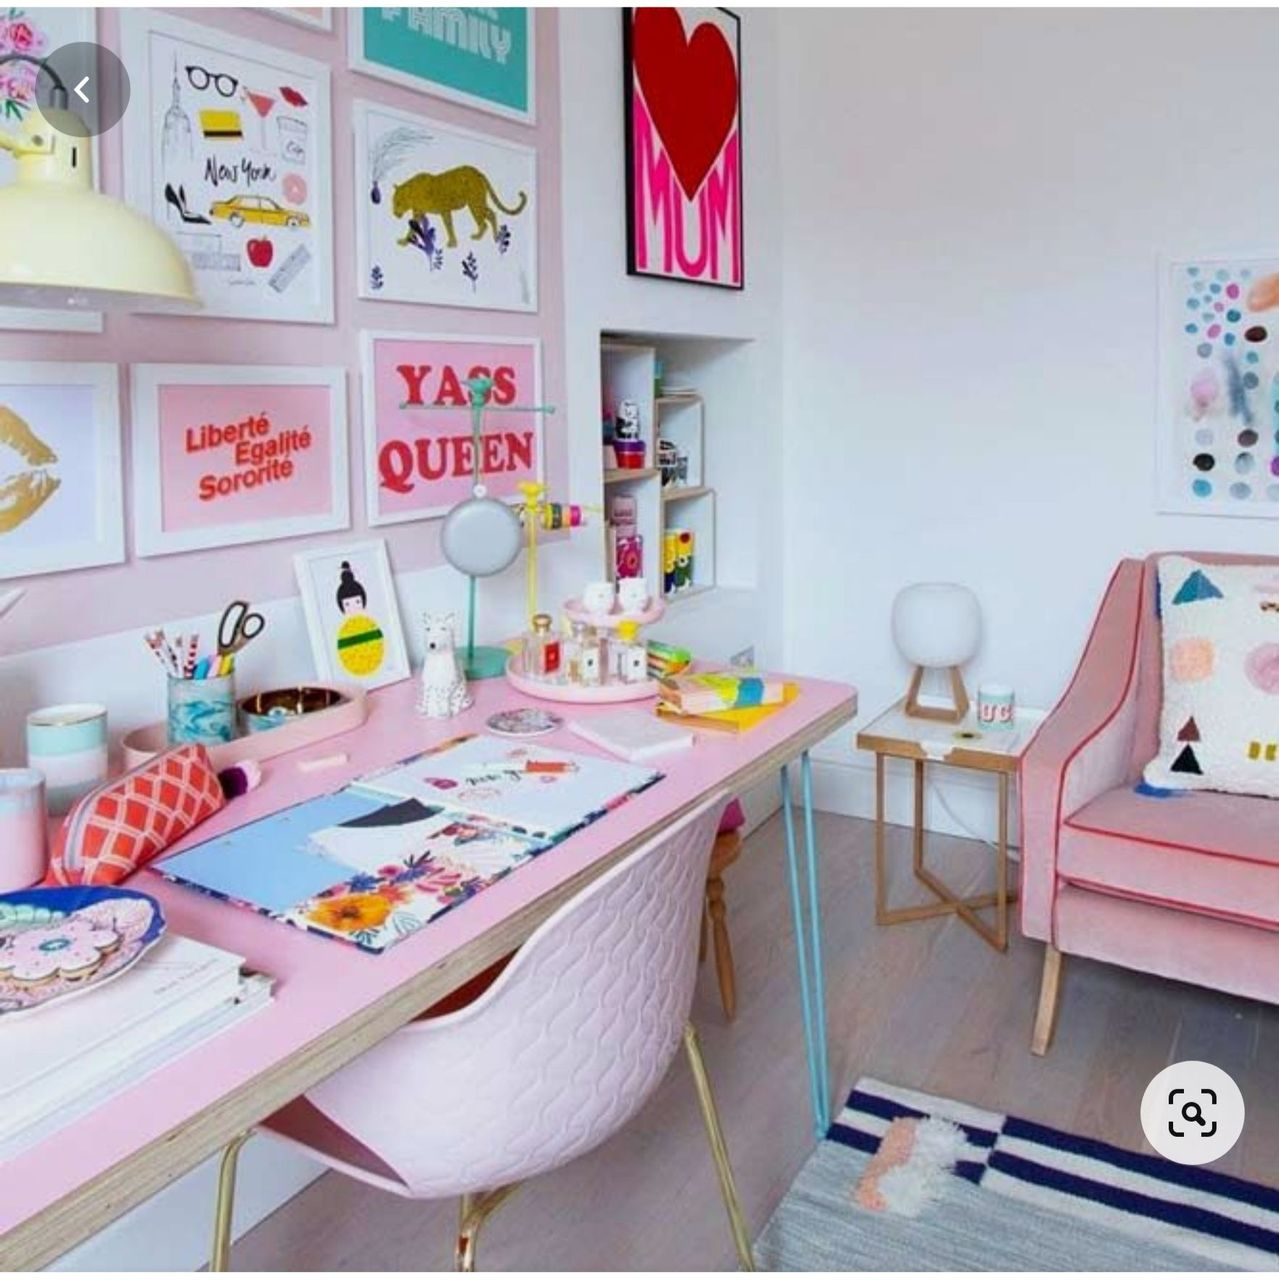 Khushi's Study ( Where in she spends Hours if she has to proceed with full on Animation/Graphics Projects - Her Creative Haven)